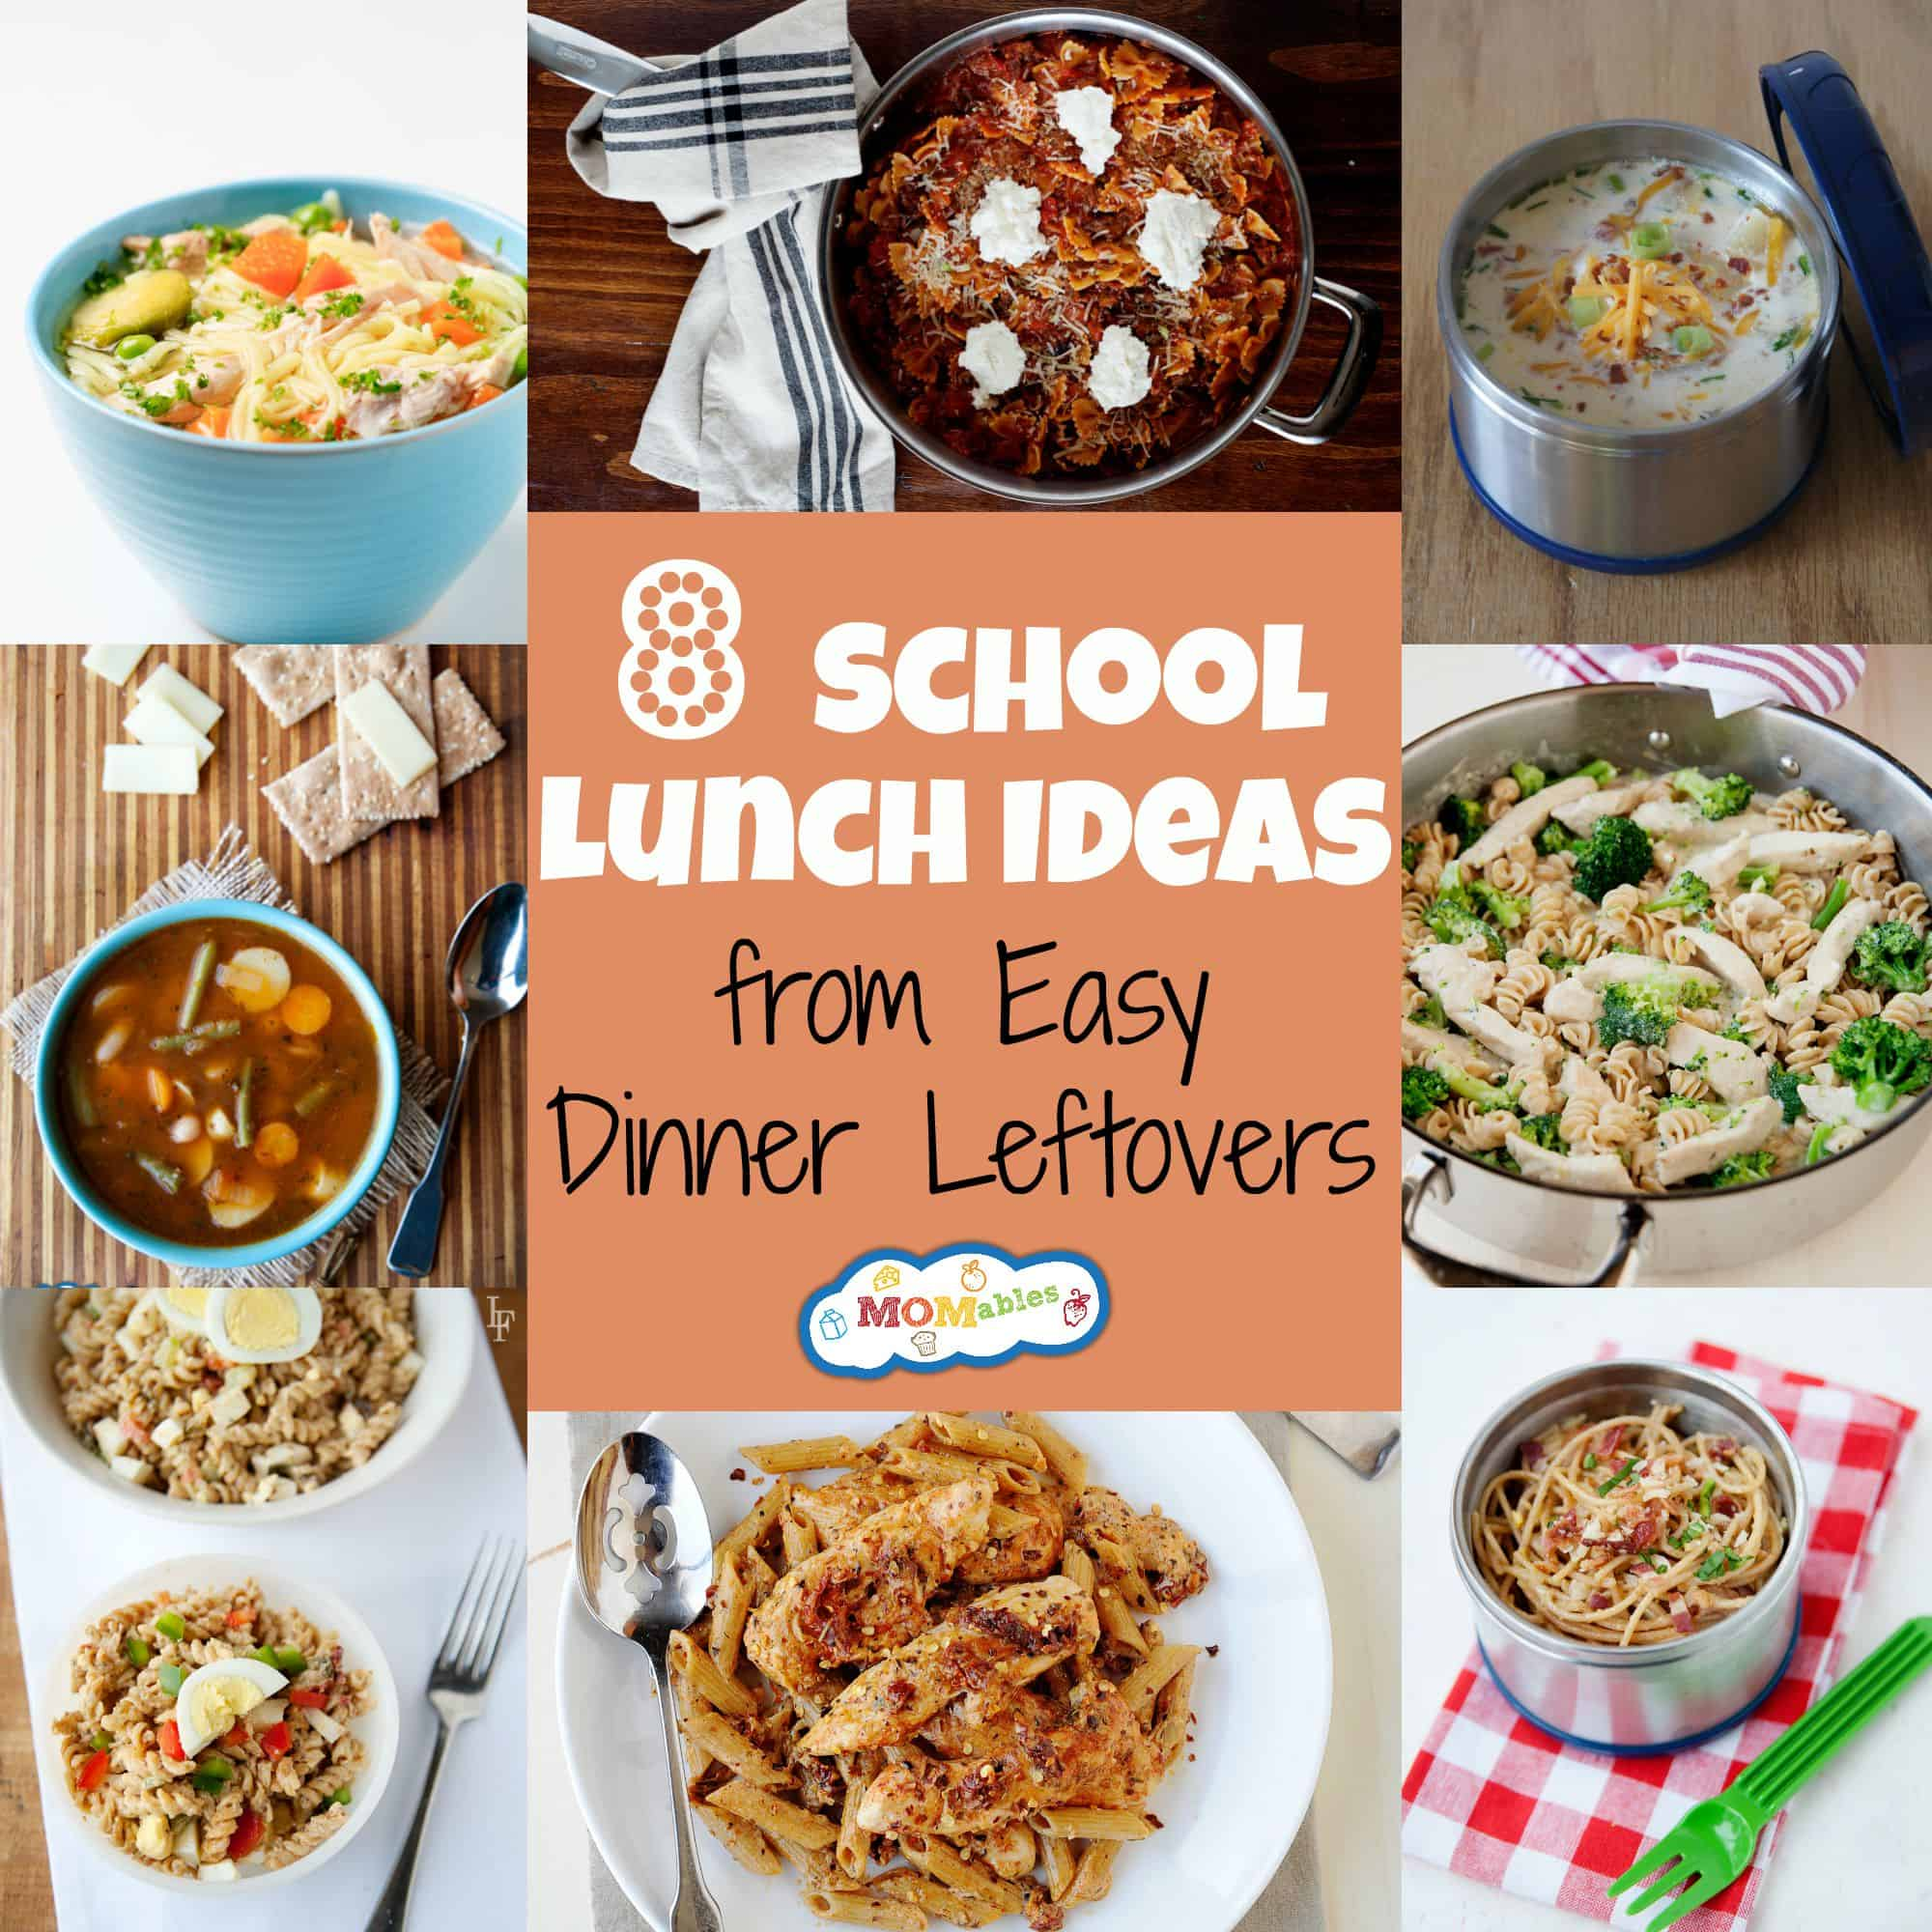 Use these easy dinner recipes for some delicious leftovers for your family! These school lunch ideas will make packing a breeze--no extra cooking required.